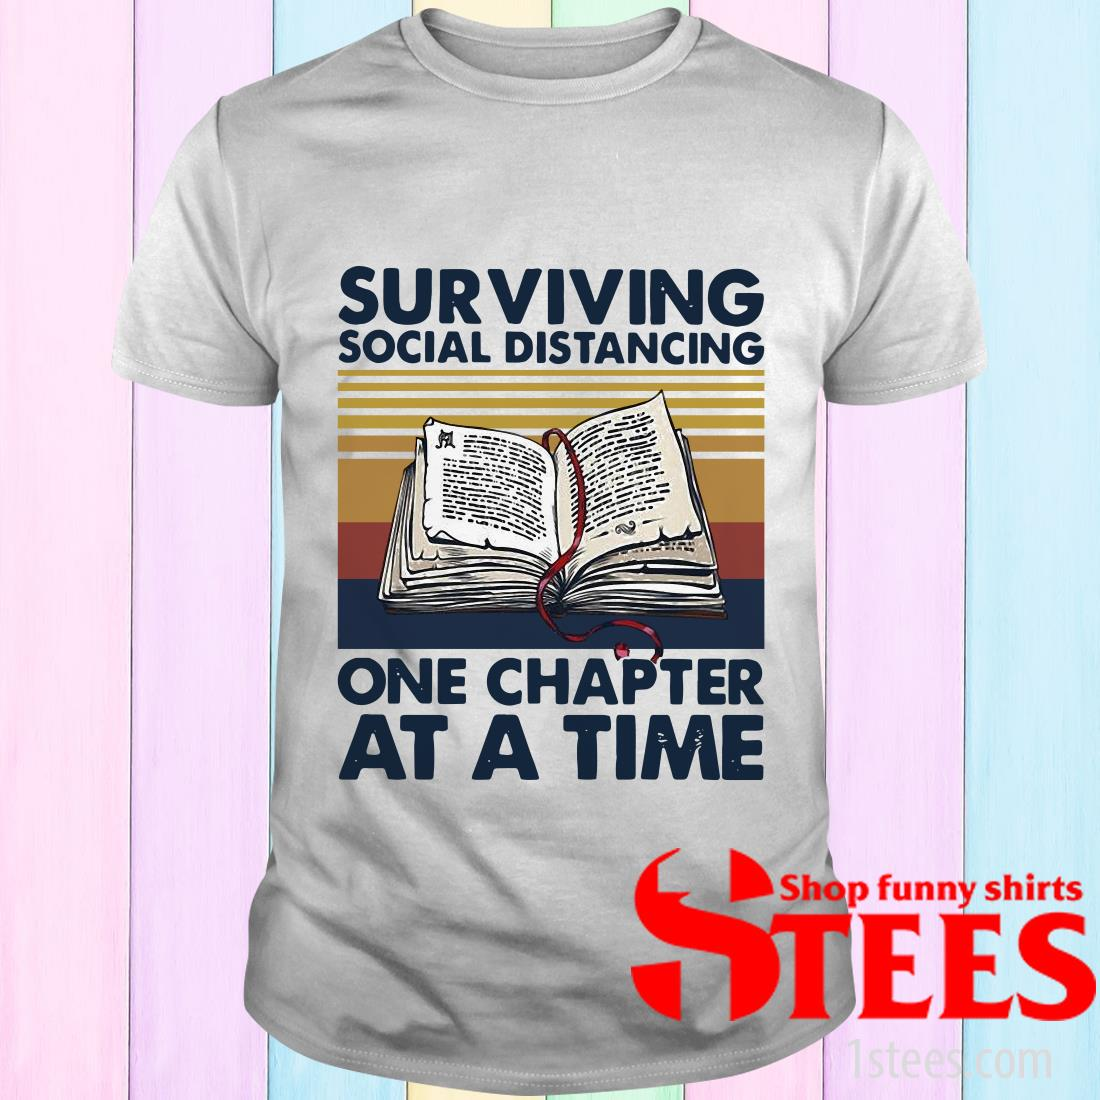 Vintage Surviving Social Distancing One Chapter At A Time Book T-Shirt